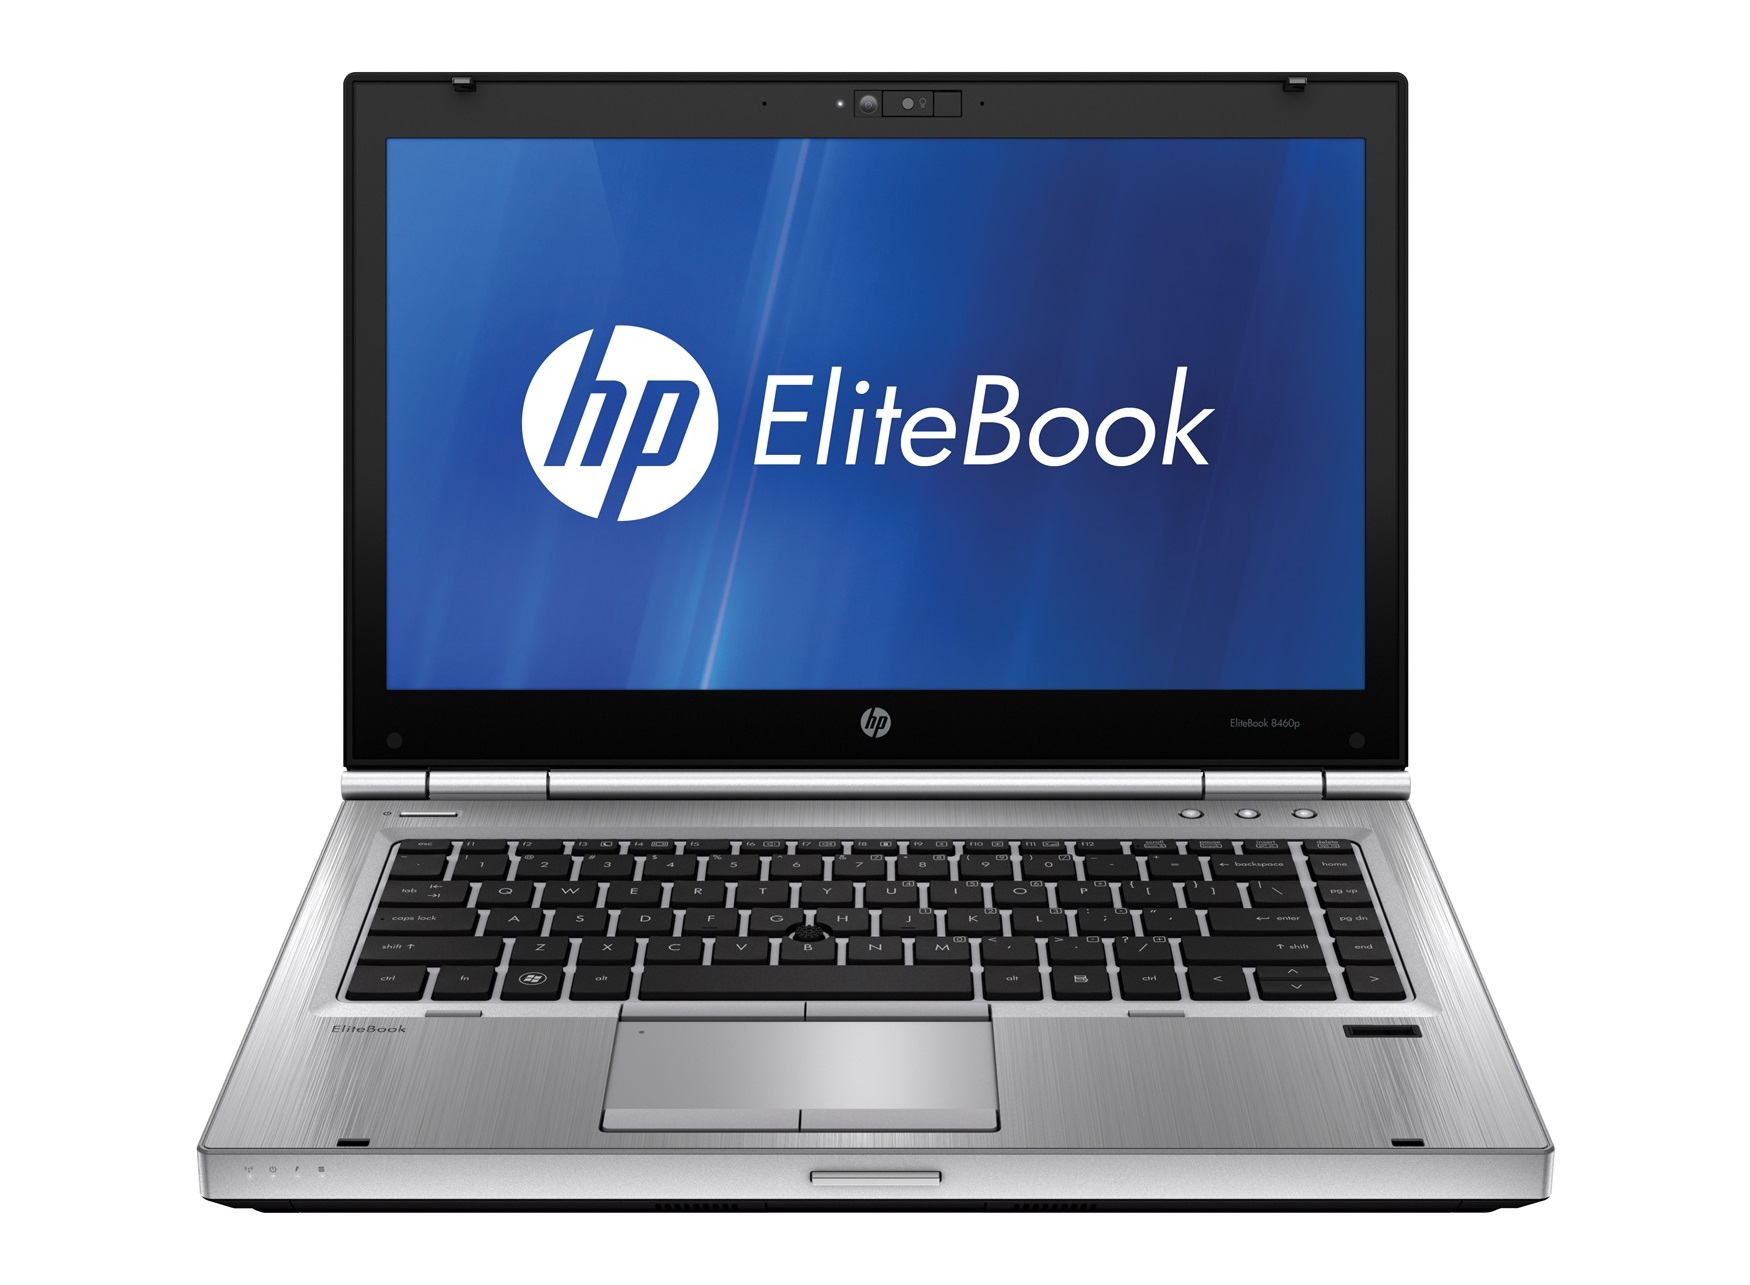 HP EliteBook 8460p, Intel Core i5, 4GB, 250GB